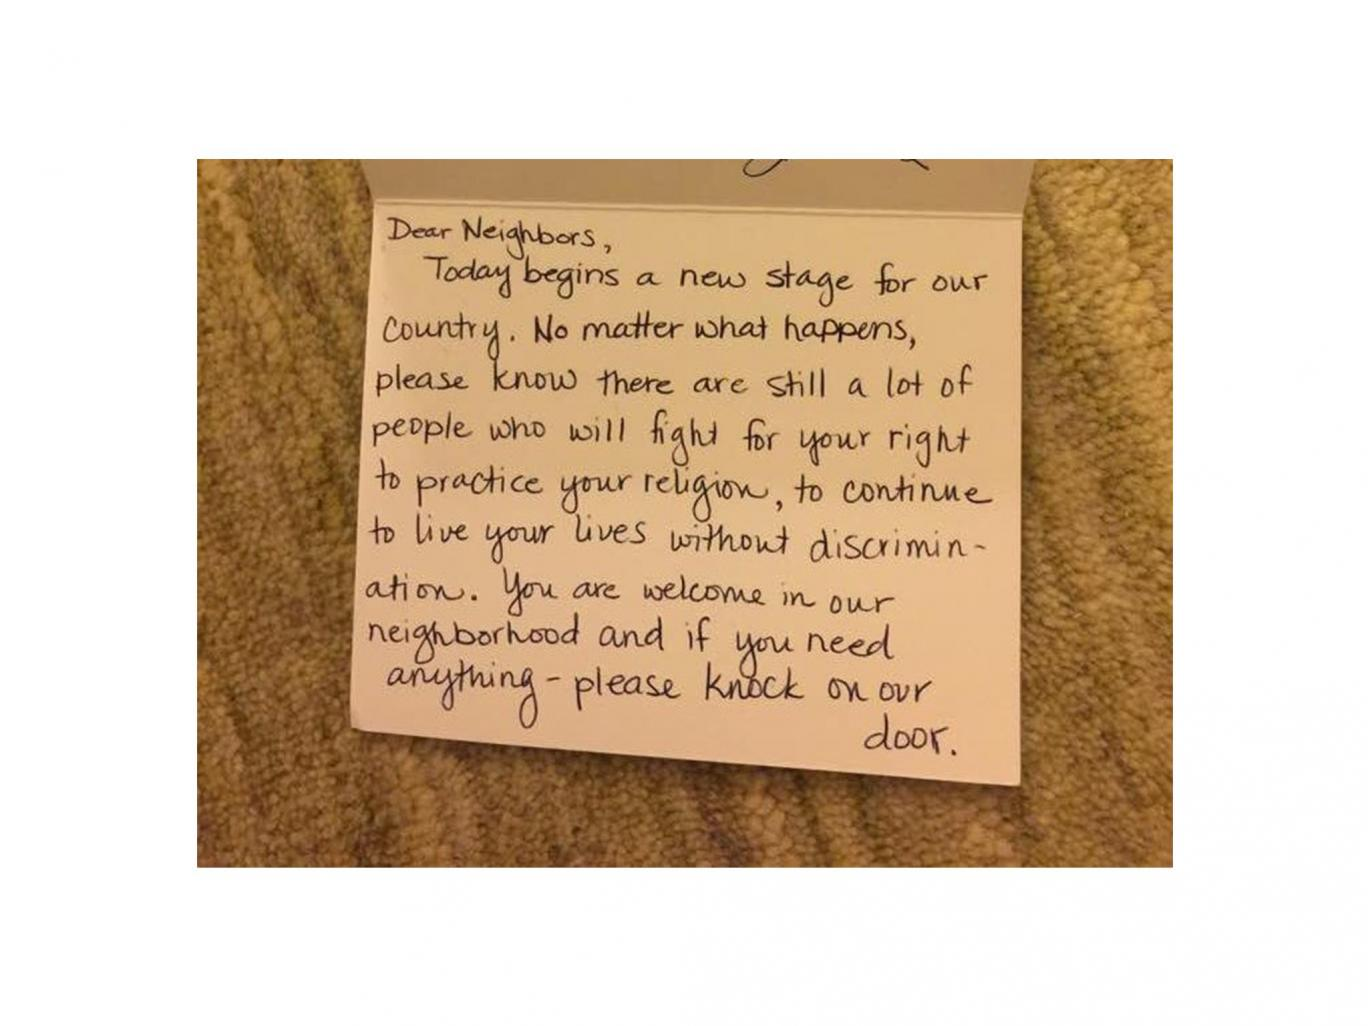 A picture of the note shared on Twitter by Hend Amry (@LibyaLiberty)